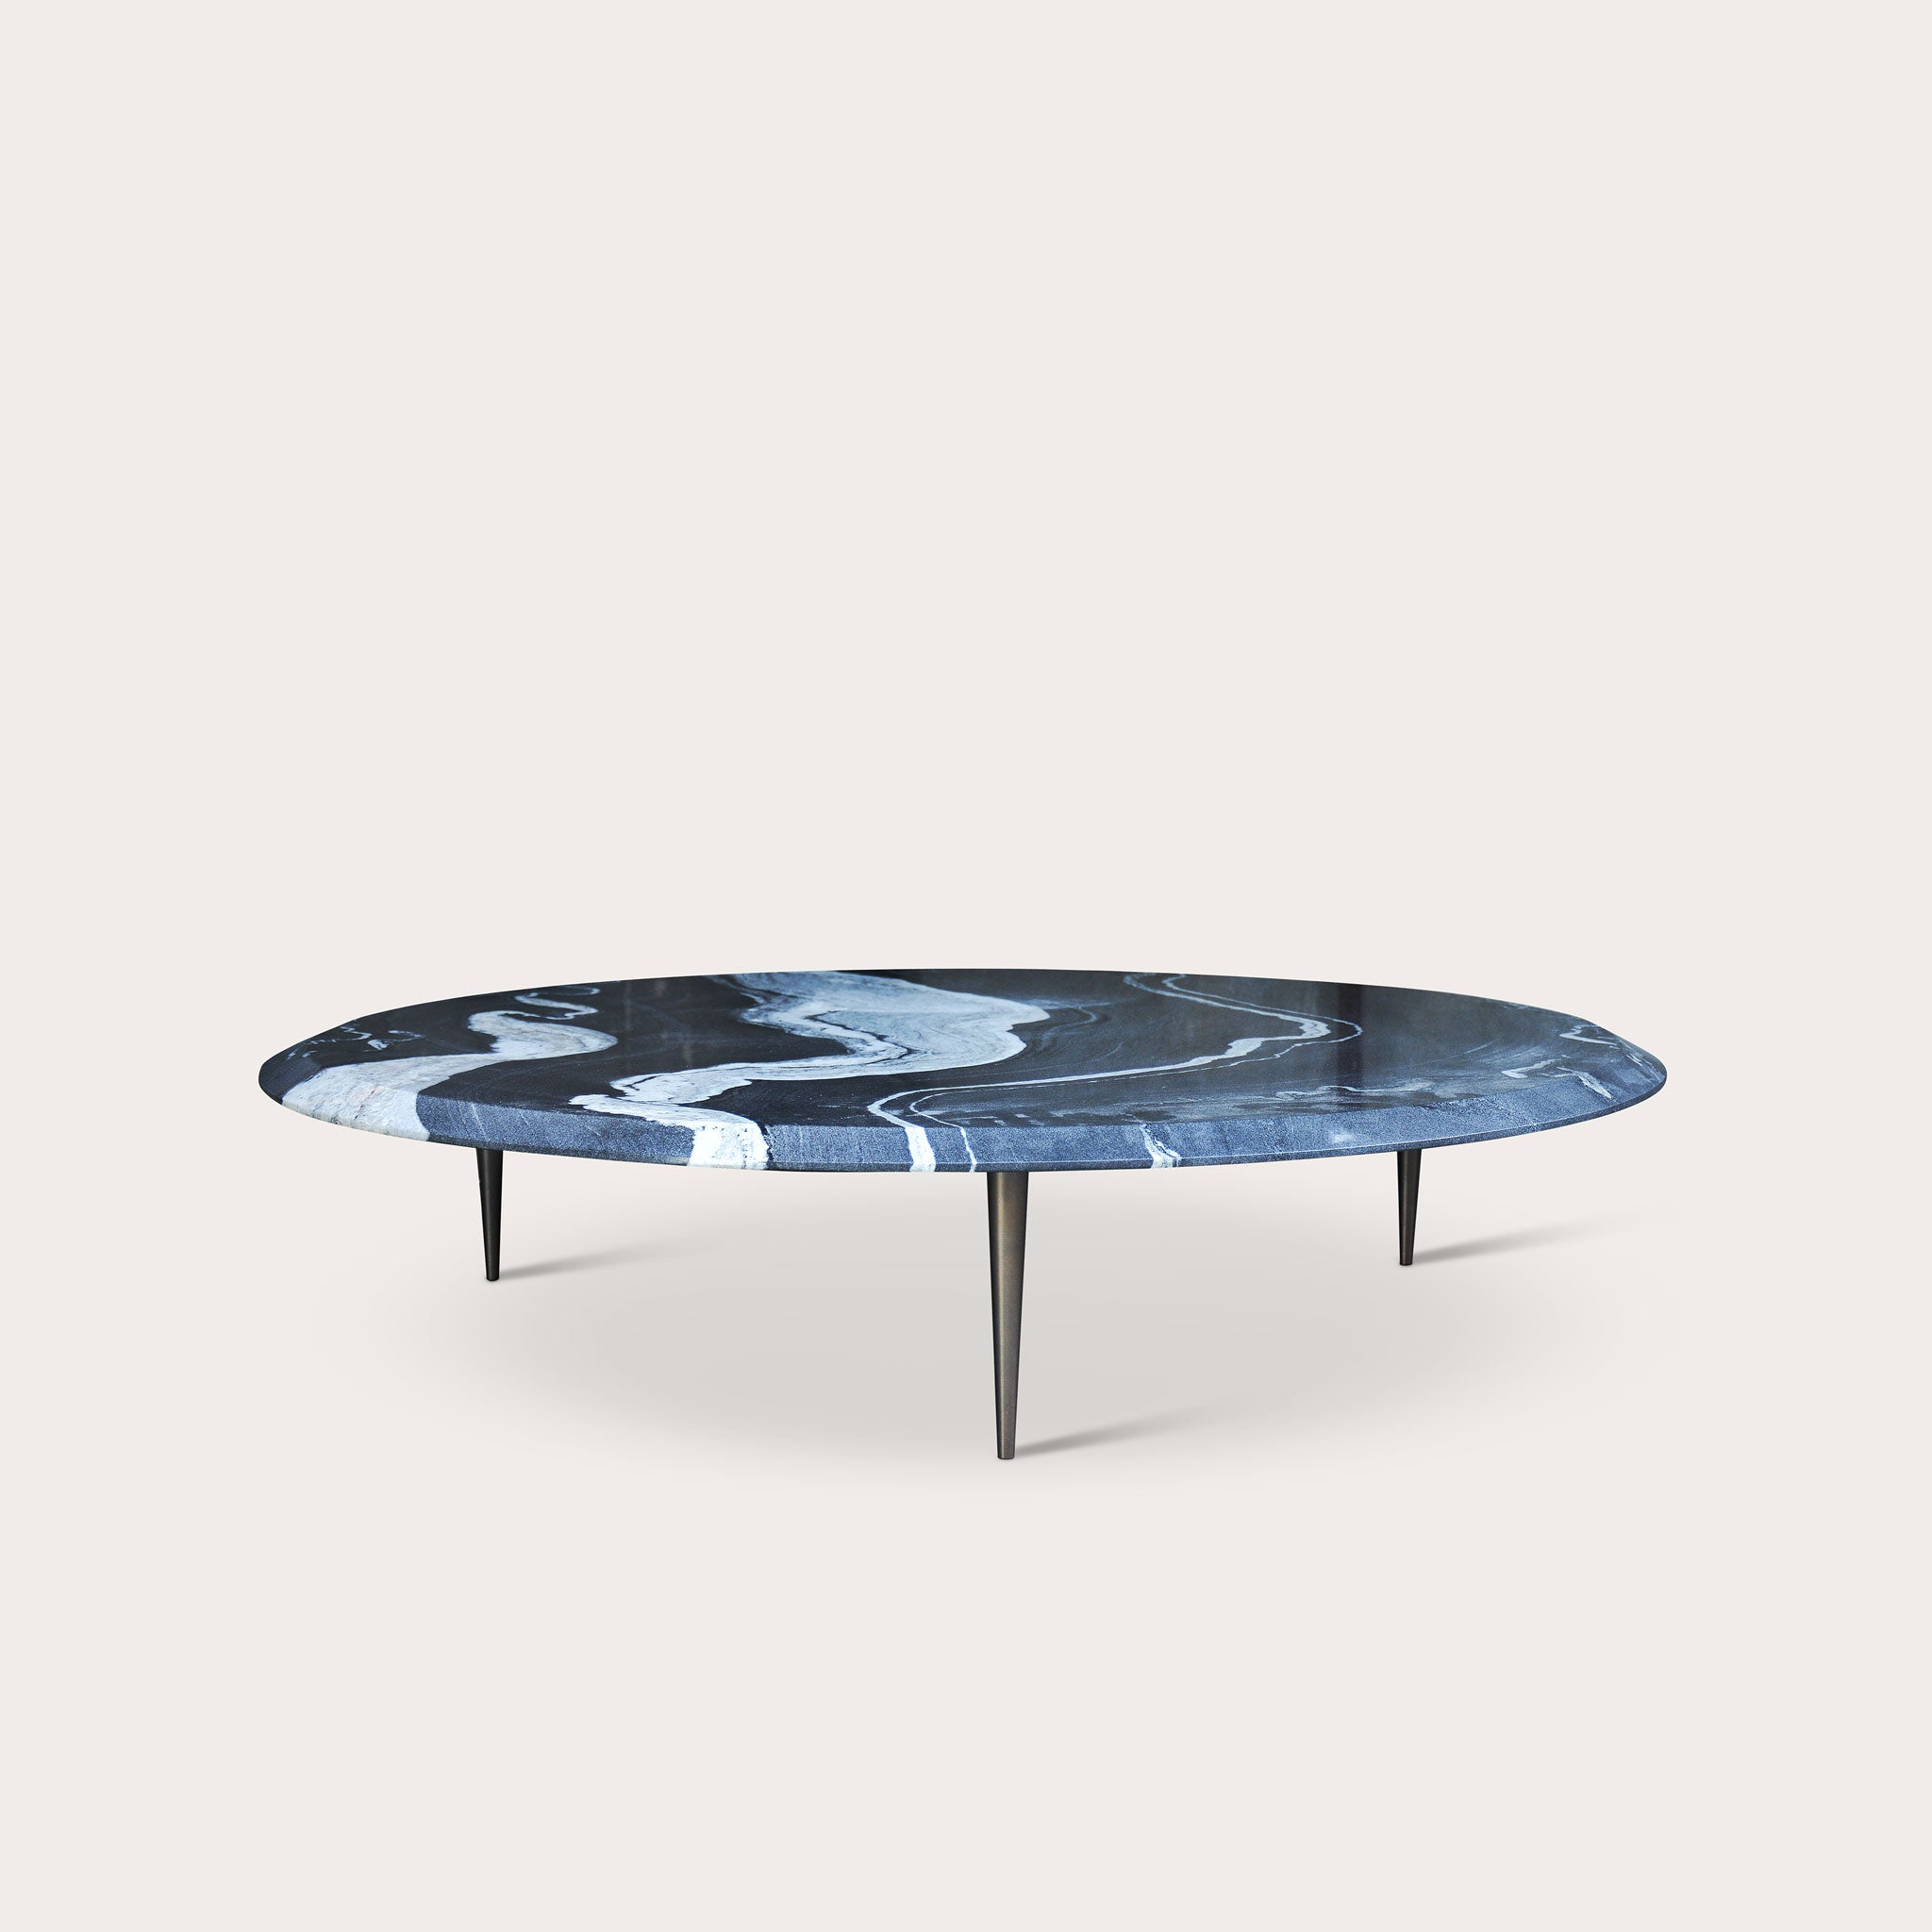 Moon Copacabana Coffee Table Tables Simone Coste Designer Furniture Sku: 992-230-10067